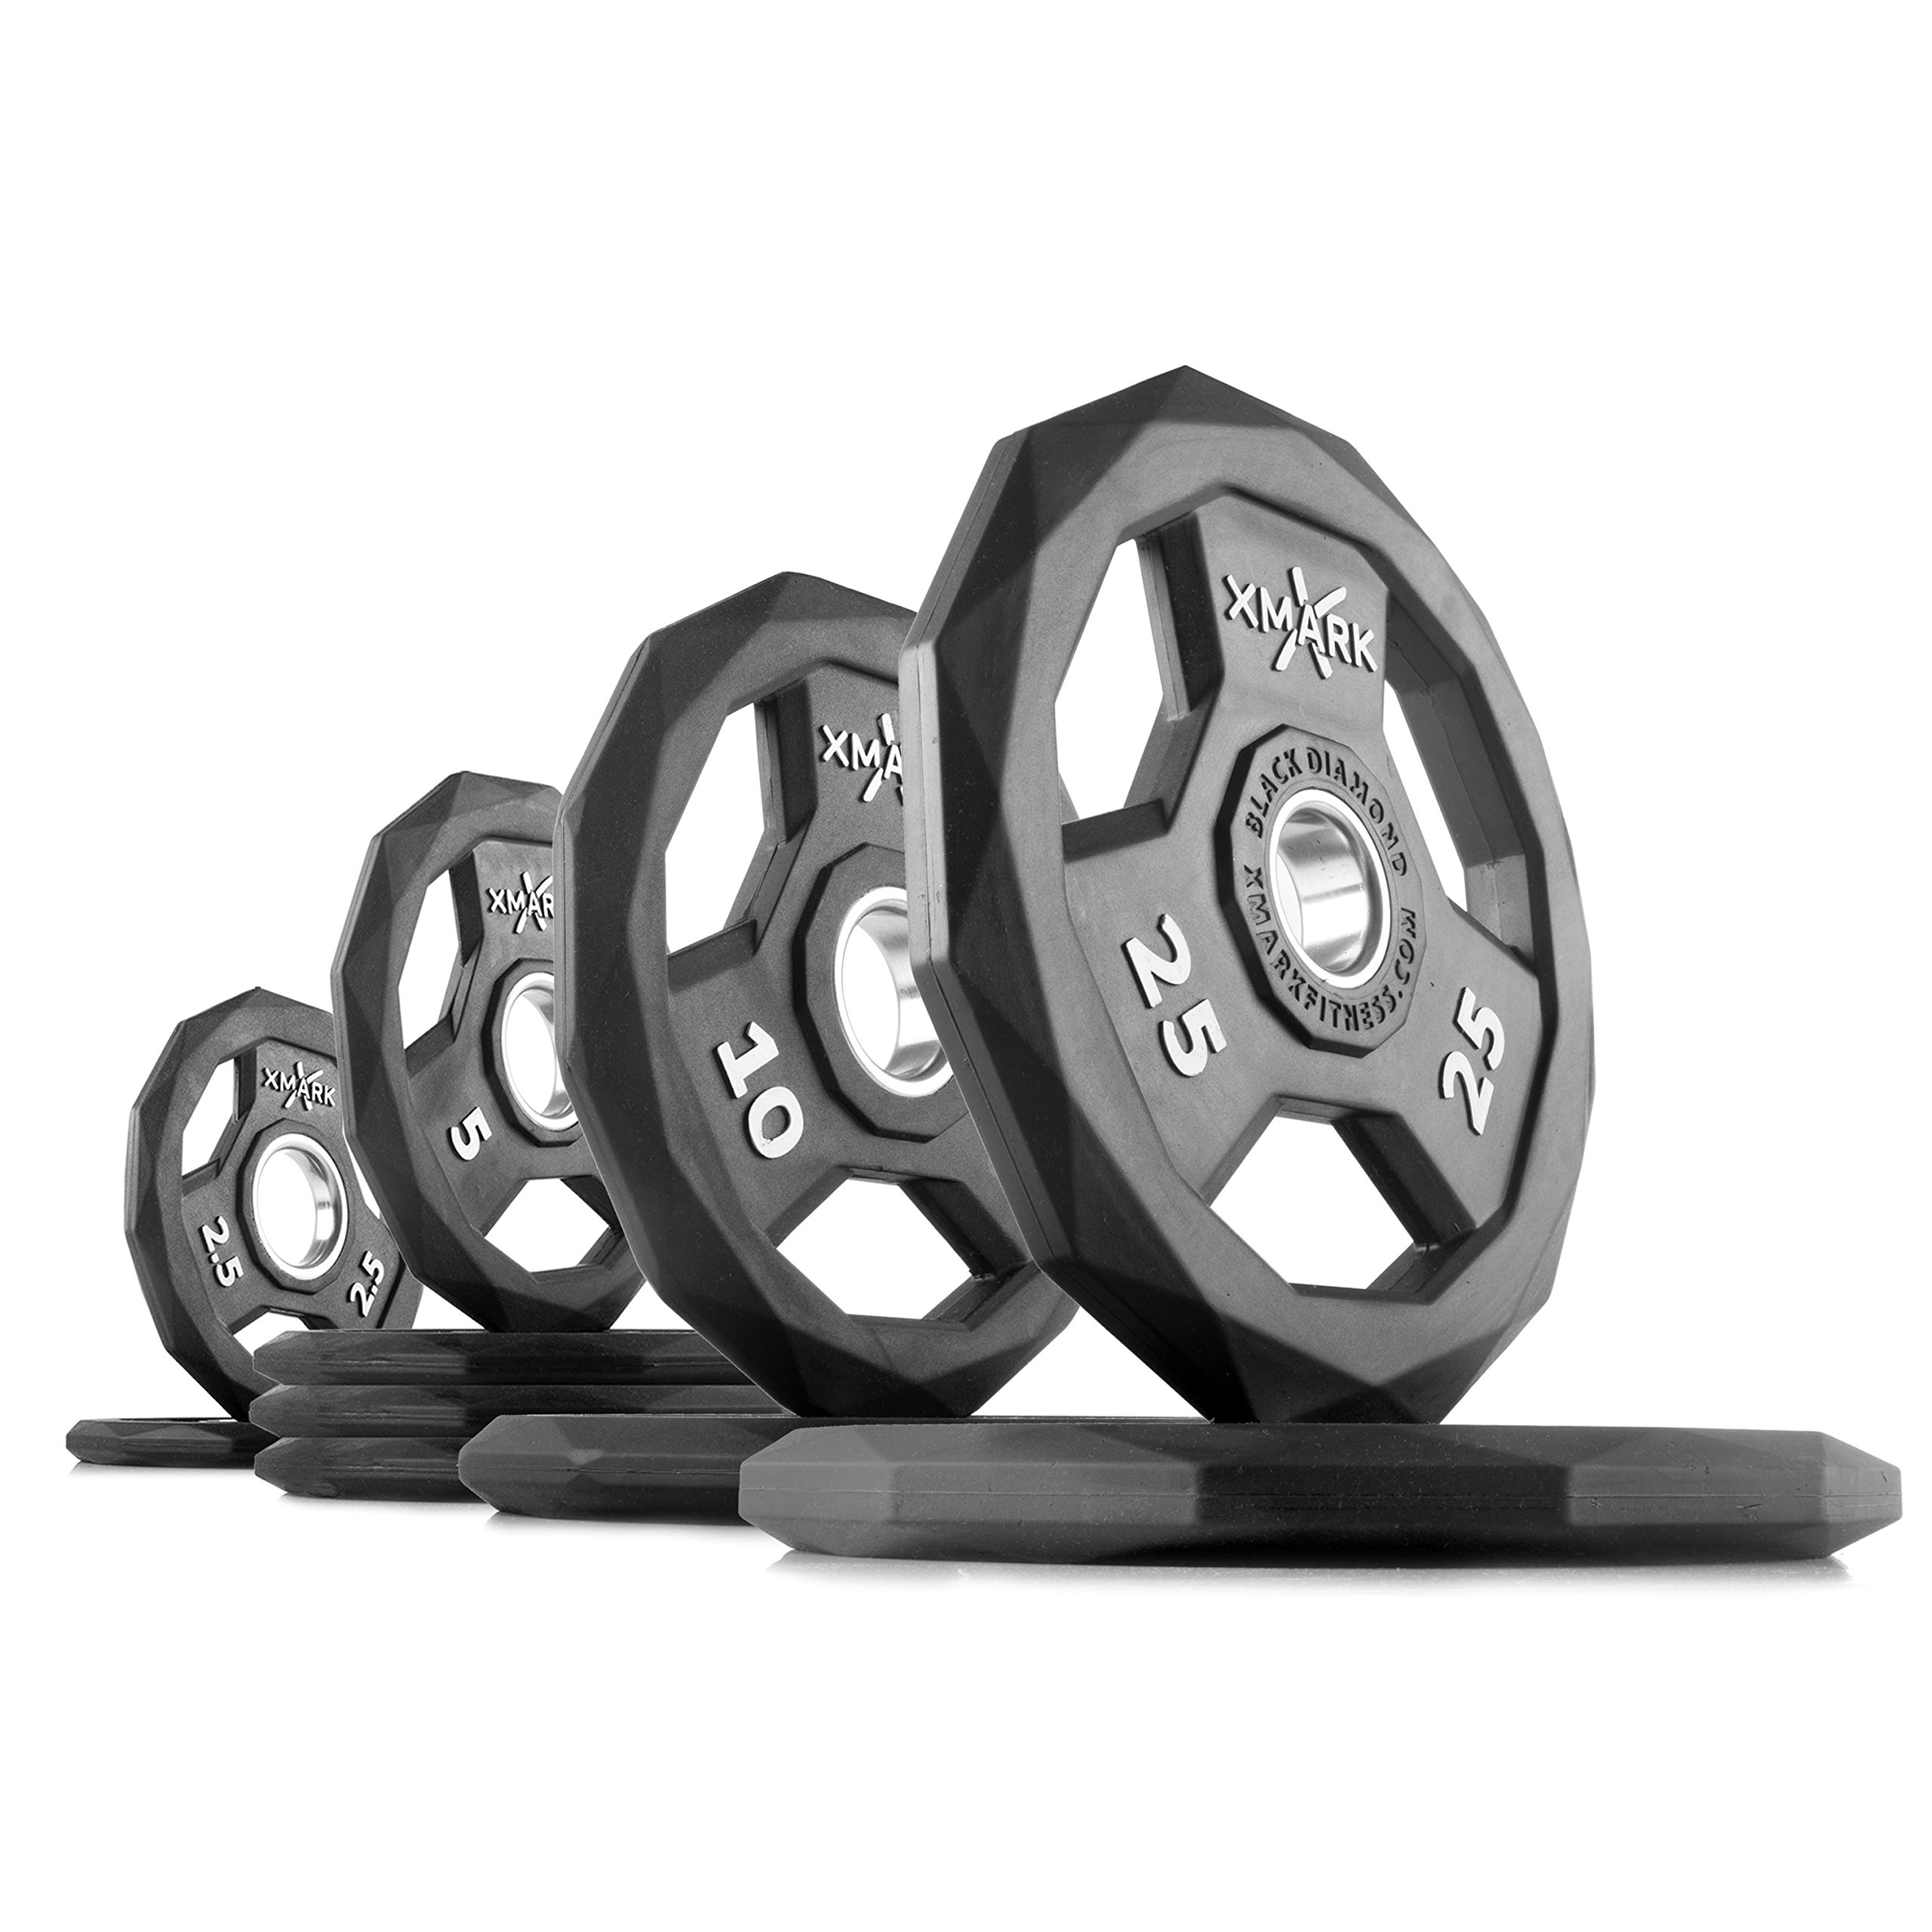 XMark Black Diamond 95 lb Set Olympic Weight Plates, One-Year Warranty, Patented Design